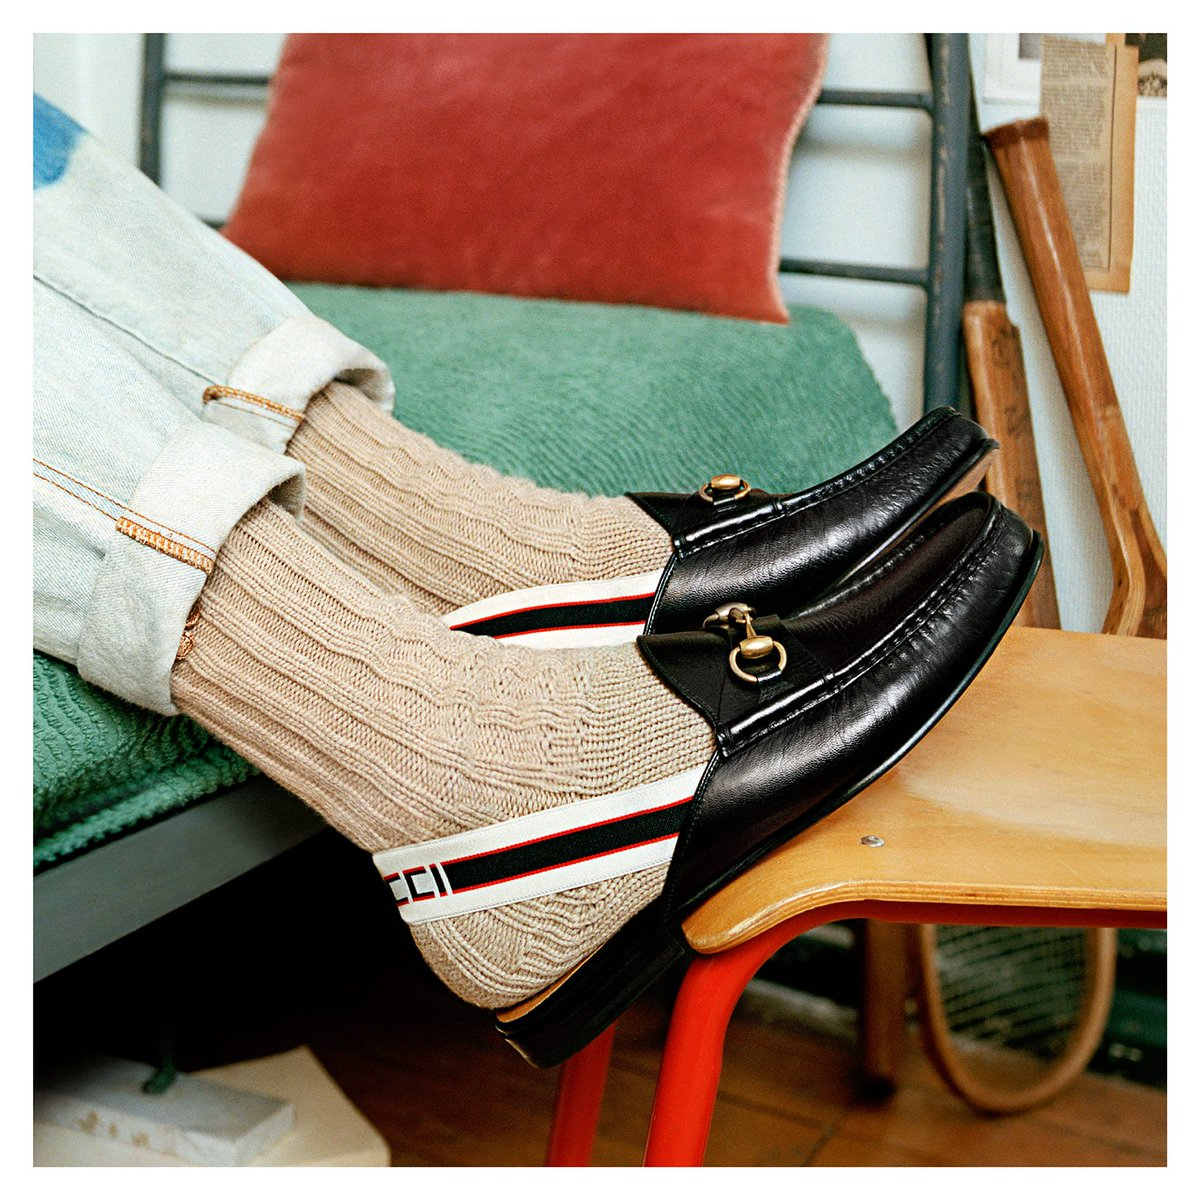 c5016425b60 ... slippers featuring the Horsebit detail and the sportswear-inspired Gucci  jacquard stripe on the back